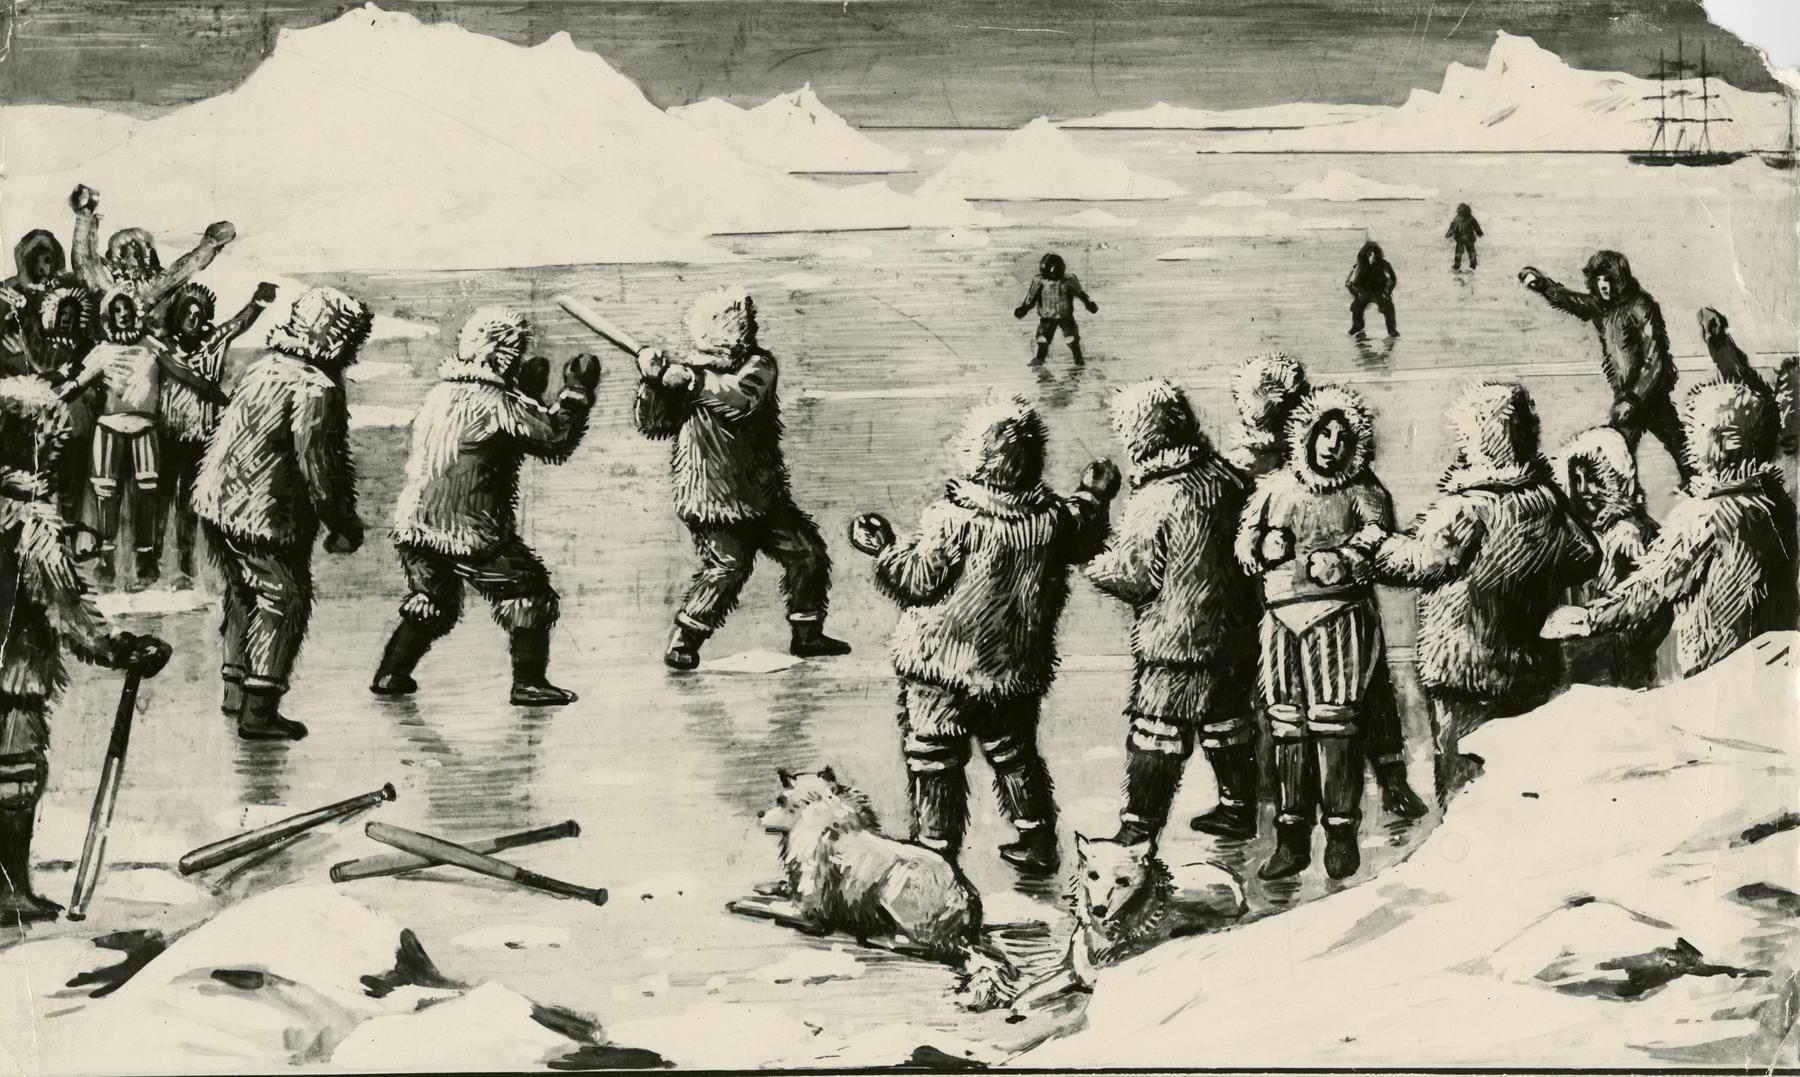 Artwork that depicts a baseball game in Alaska held in 1894. BL-2540.93 (National Baseball Hall of Fame Library)